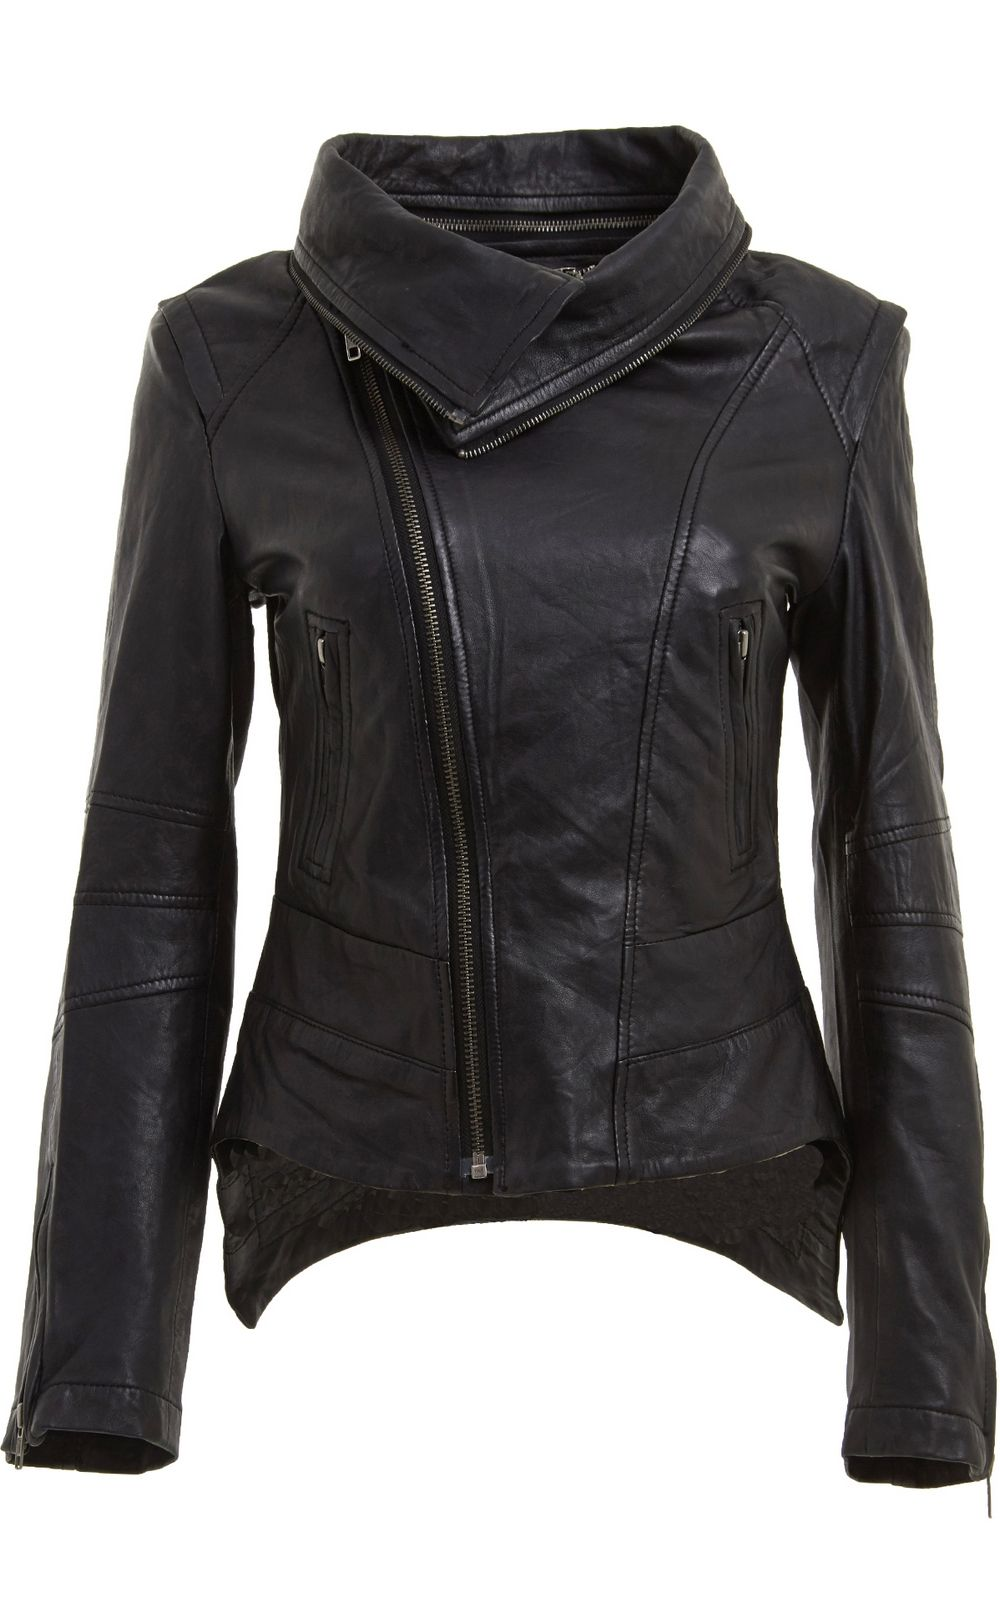 Womens Removable Zip Neck Black Leather Jacket side shot | oooh ...